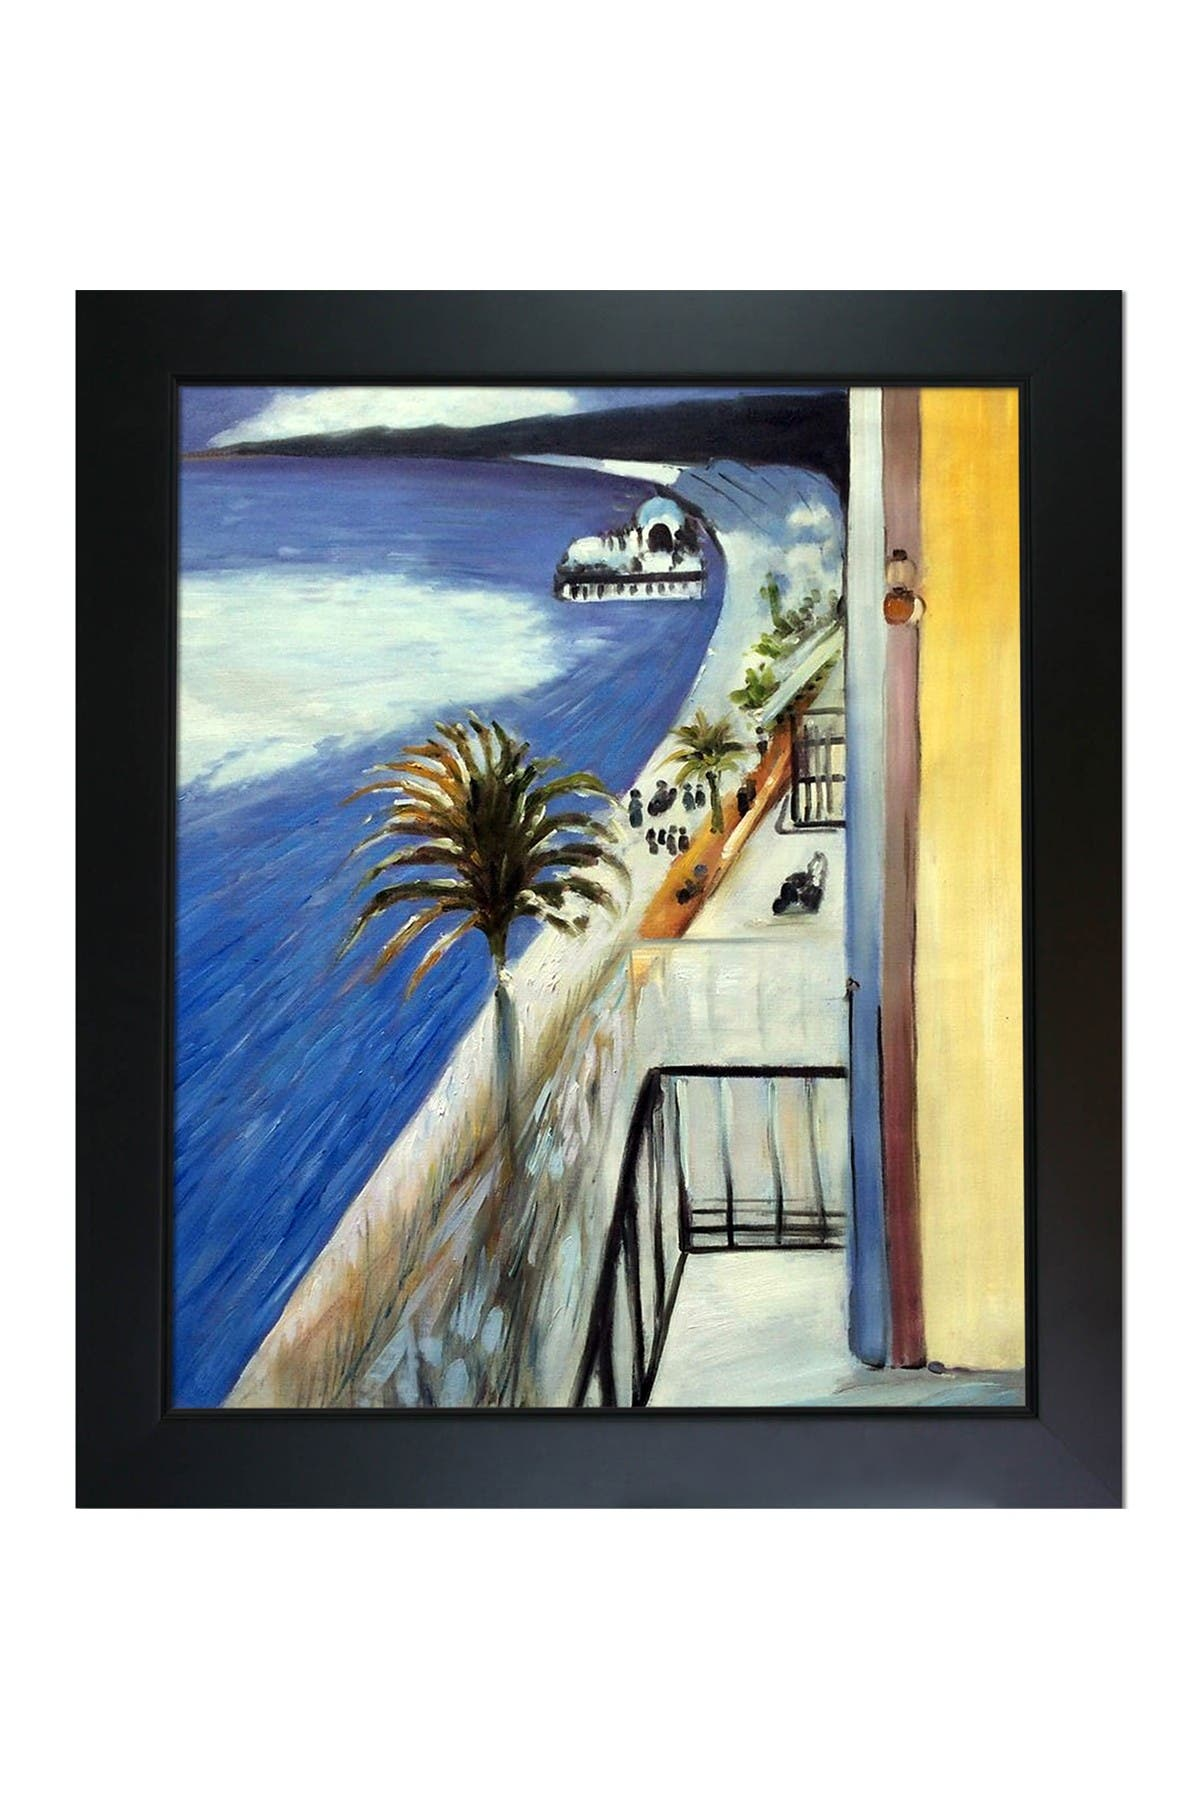 Image of Overstock Art The Bay of Nice, 1918 - Framed Oil Reproduction of an Original Painting by Henri Matisse